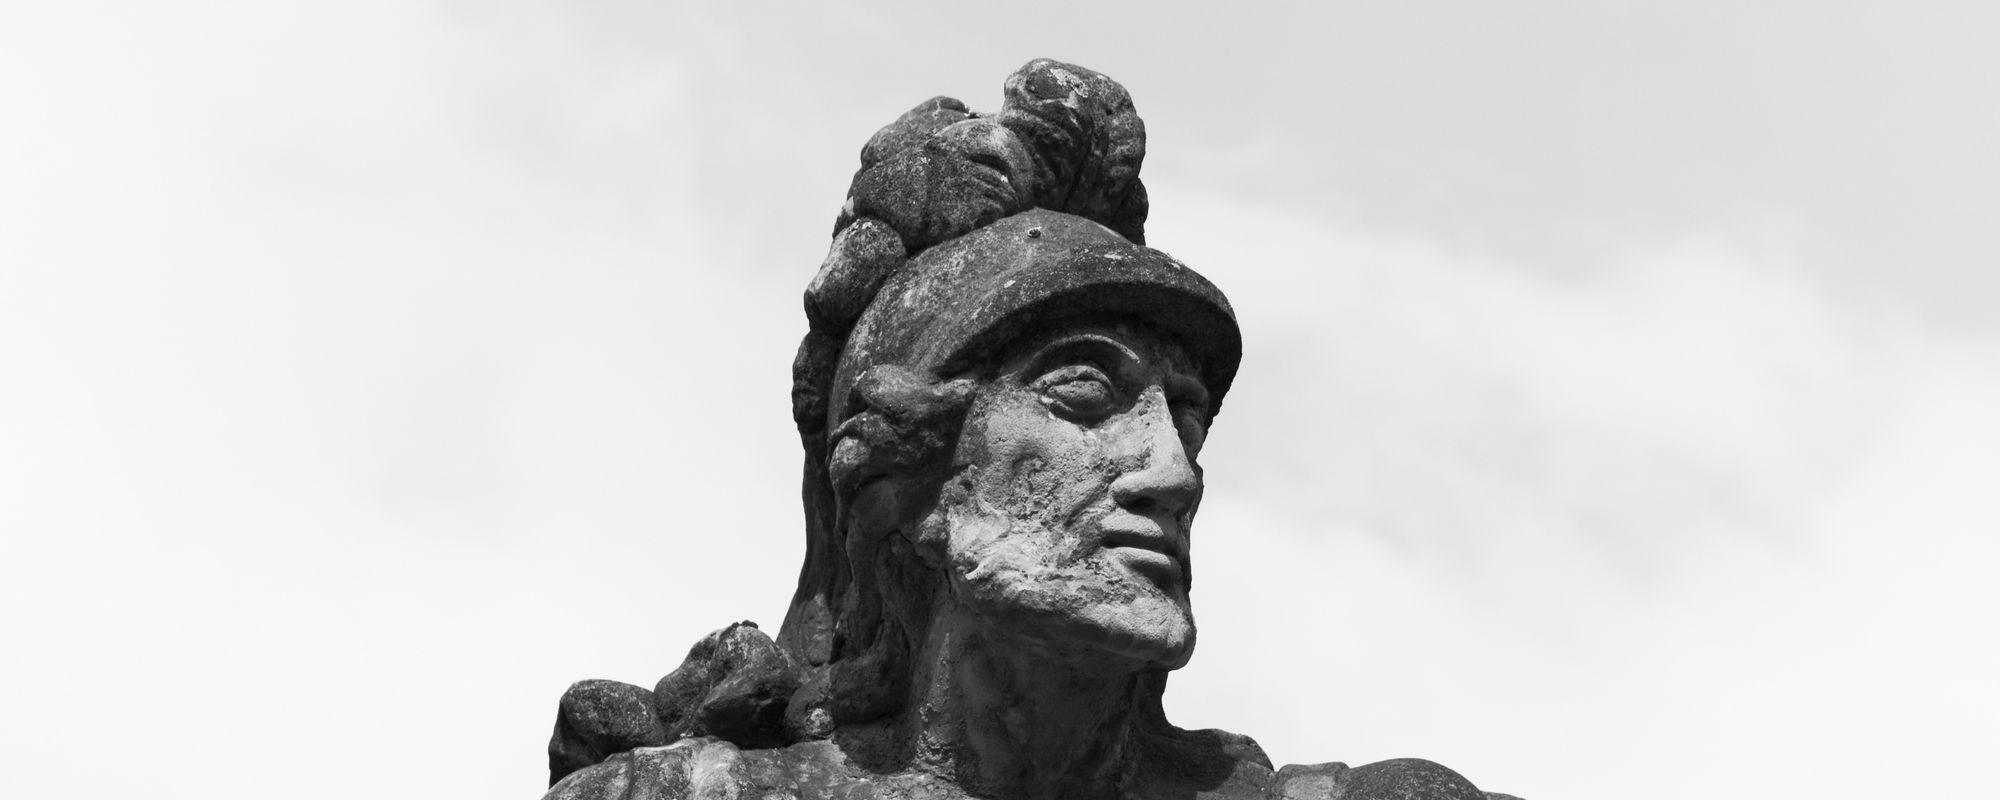 Head detail of an ancient statue of a man